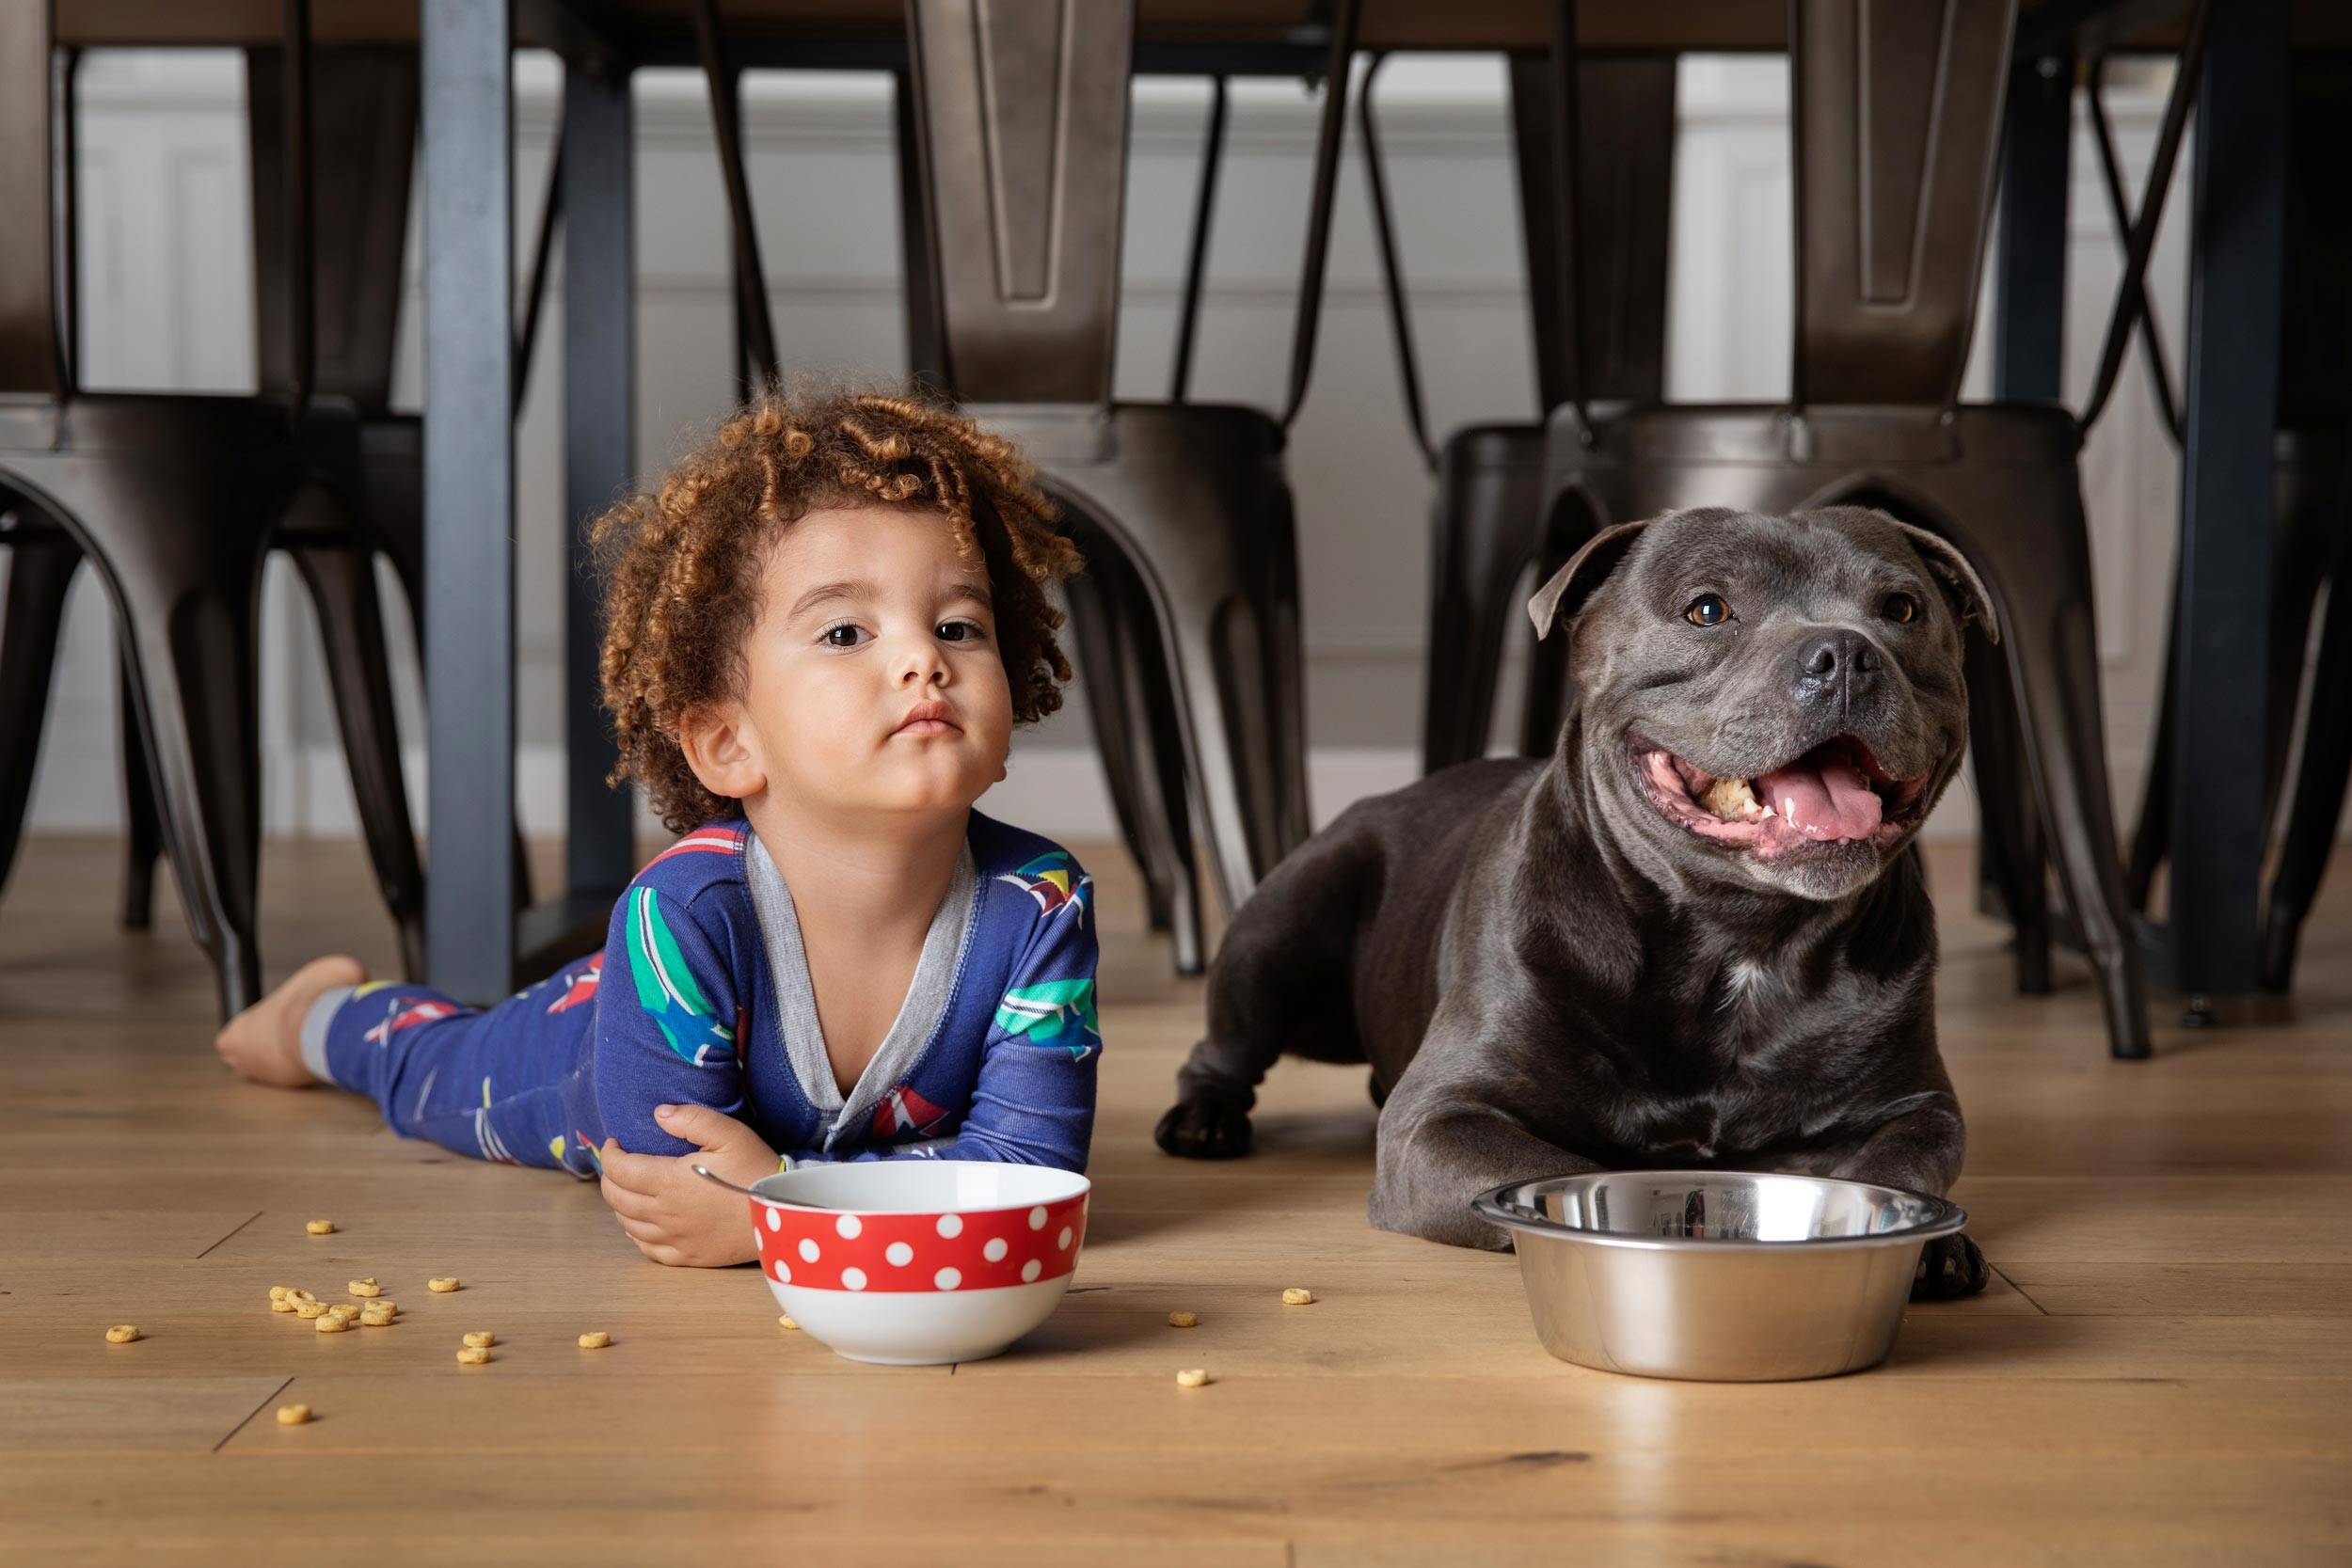 37-Commercial-kids-and-pet-photographer-Lisa-Tichane